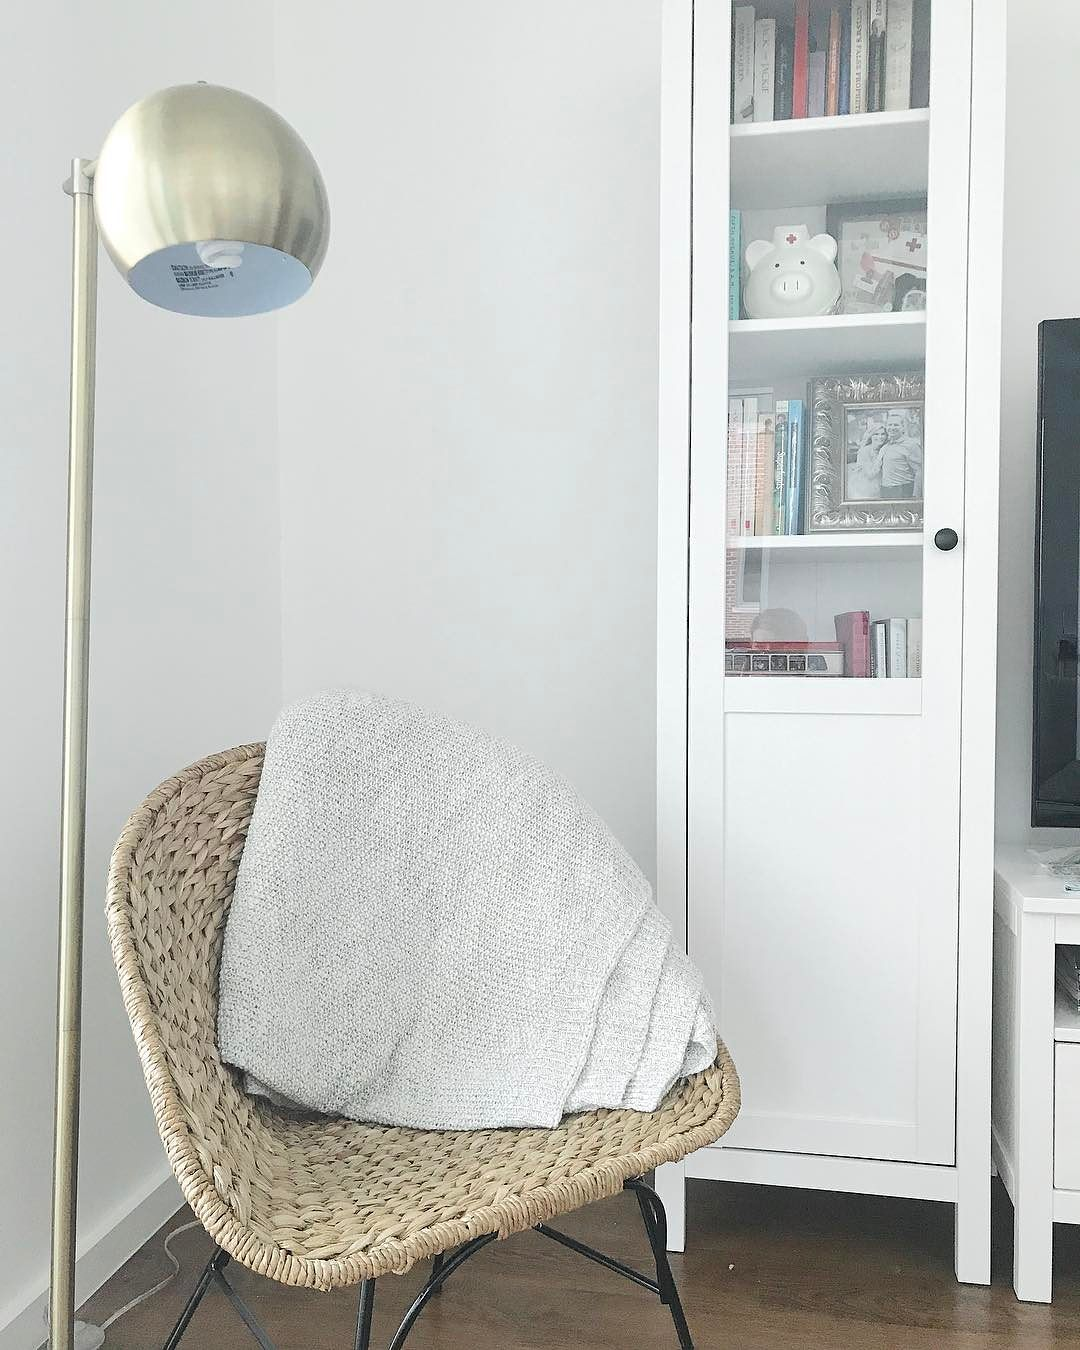 Seagrass chairs target - Everysingleseason S Picture